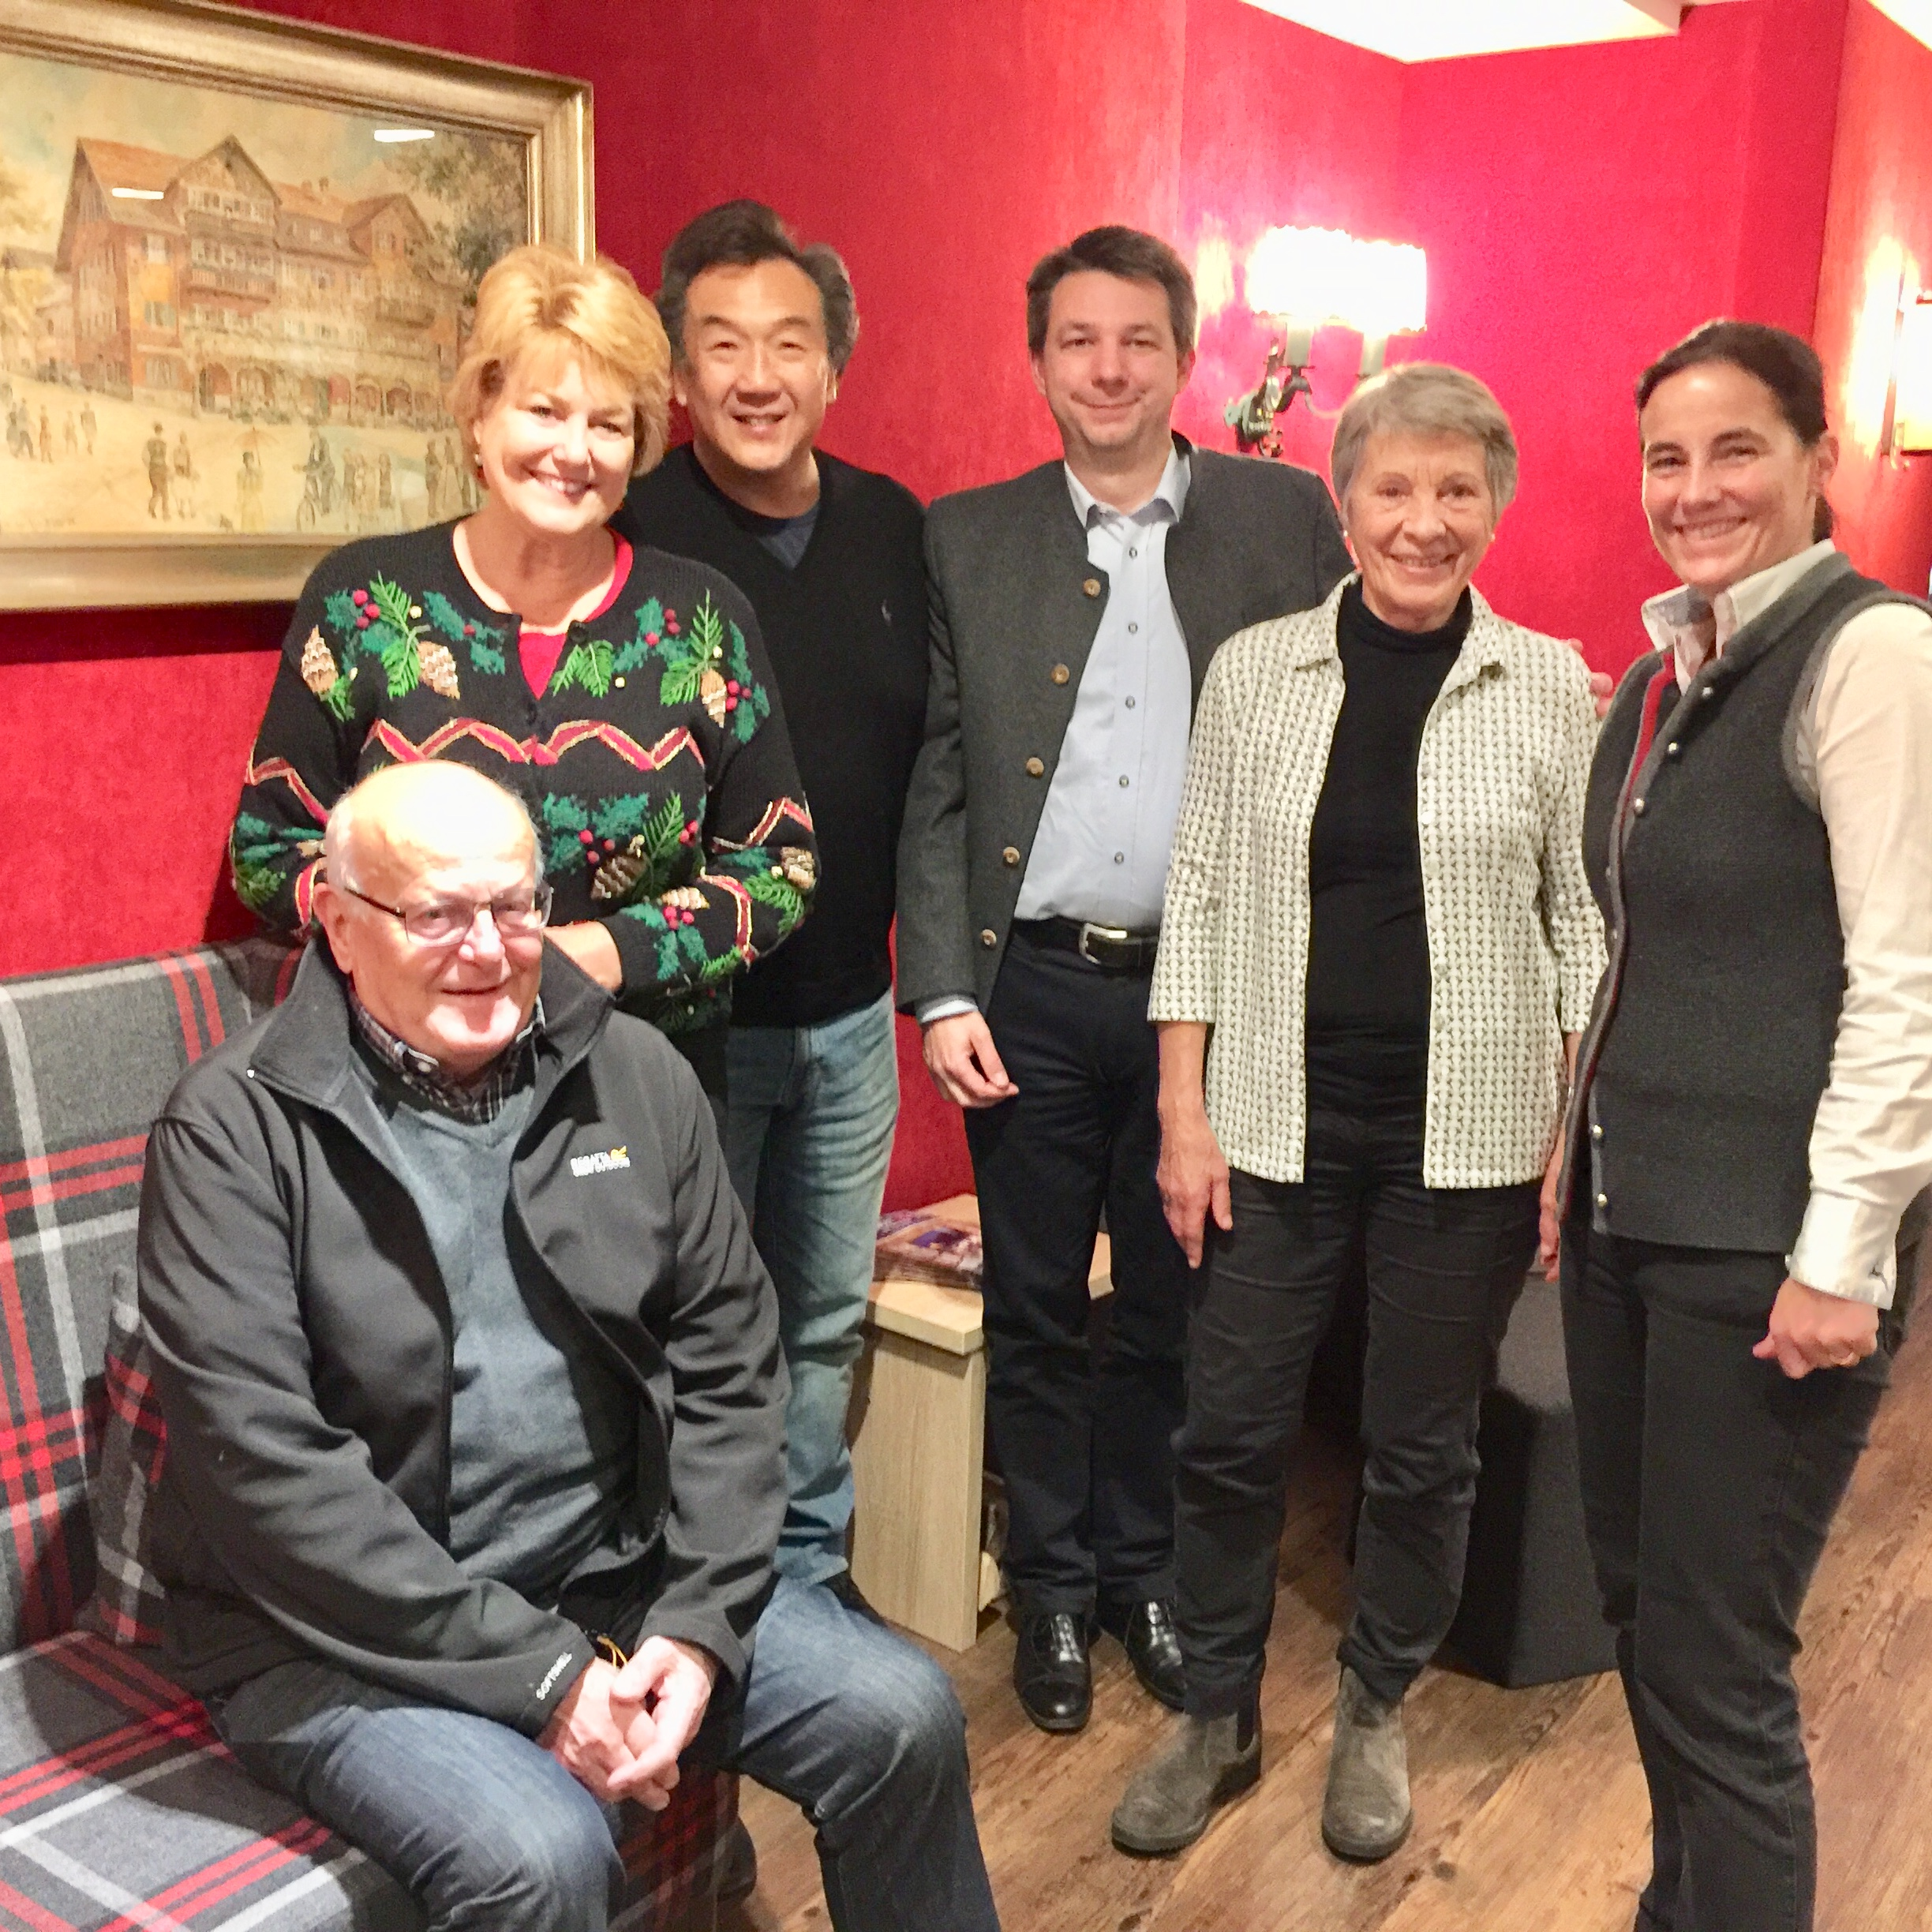 Paul and Susie Lam on a recent visit with family that owns the Wittelsbach Hotel located in the heart of Oberammergau. The town's best property has been the favored spot for our chairman's tour groups since 1984 and again in 2020.